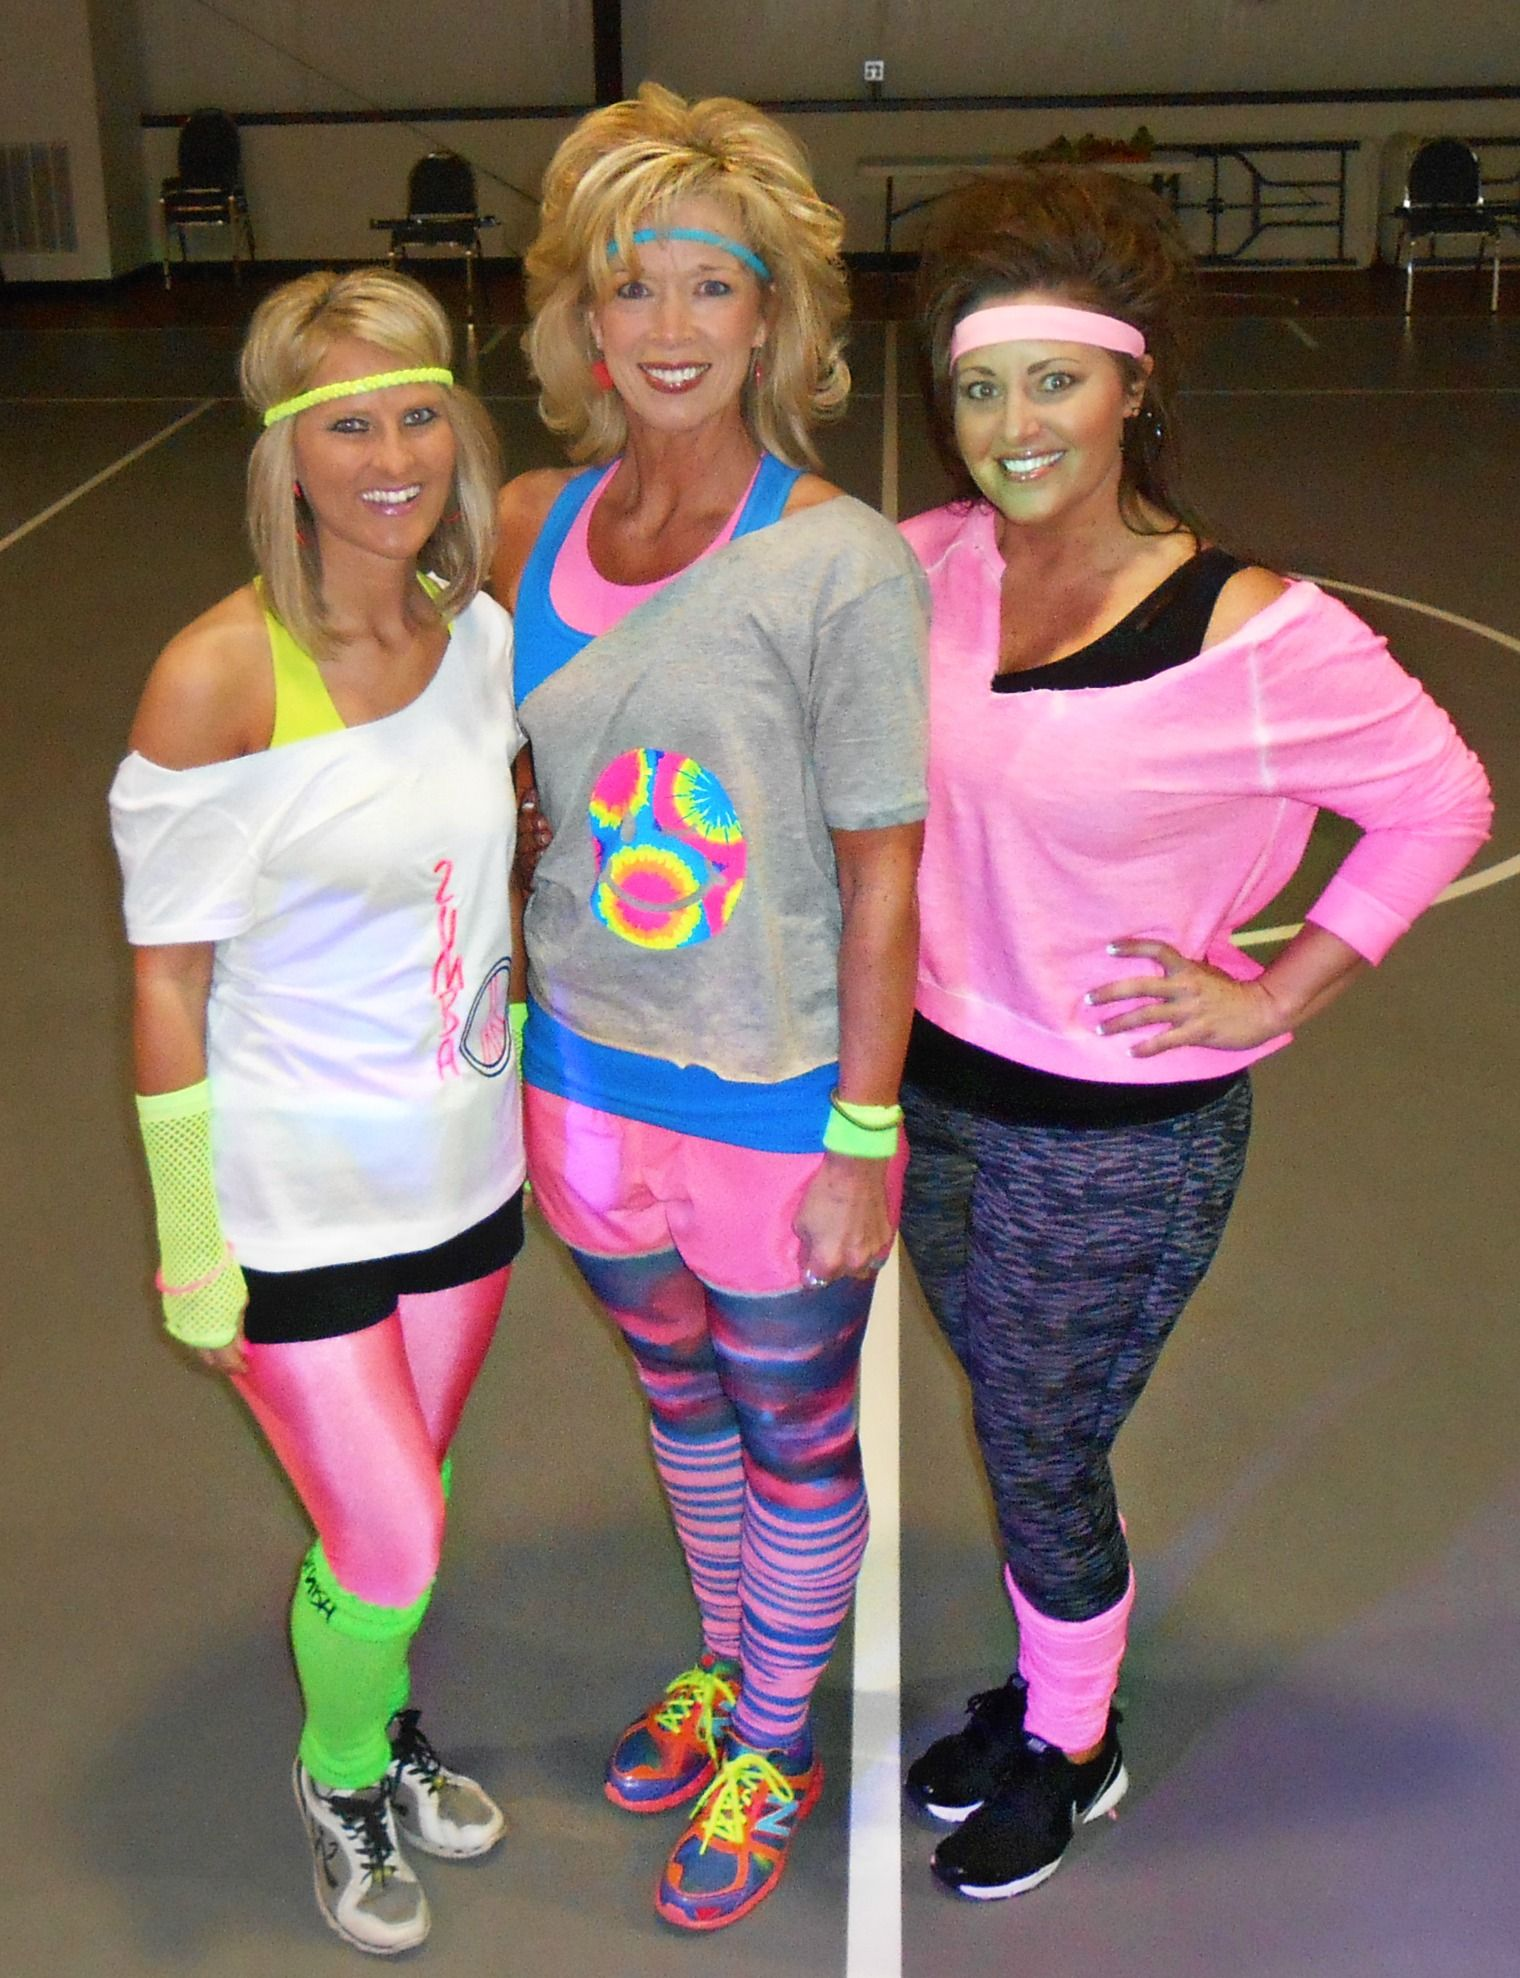 80u0026#39;s attire for Cosmic Zumba! #weworkout | Health and Fitness in 2018 | Pinterest | Halloween ...